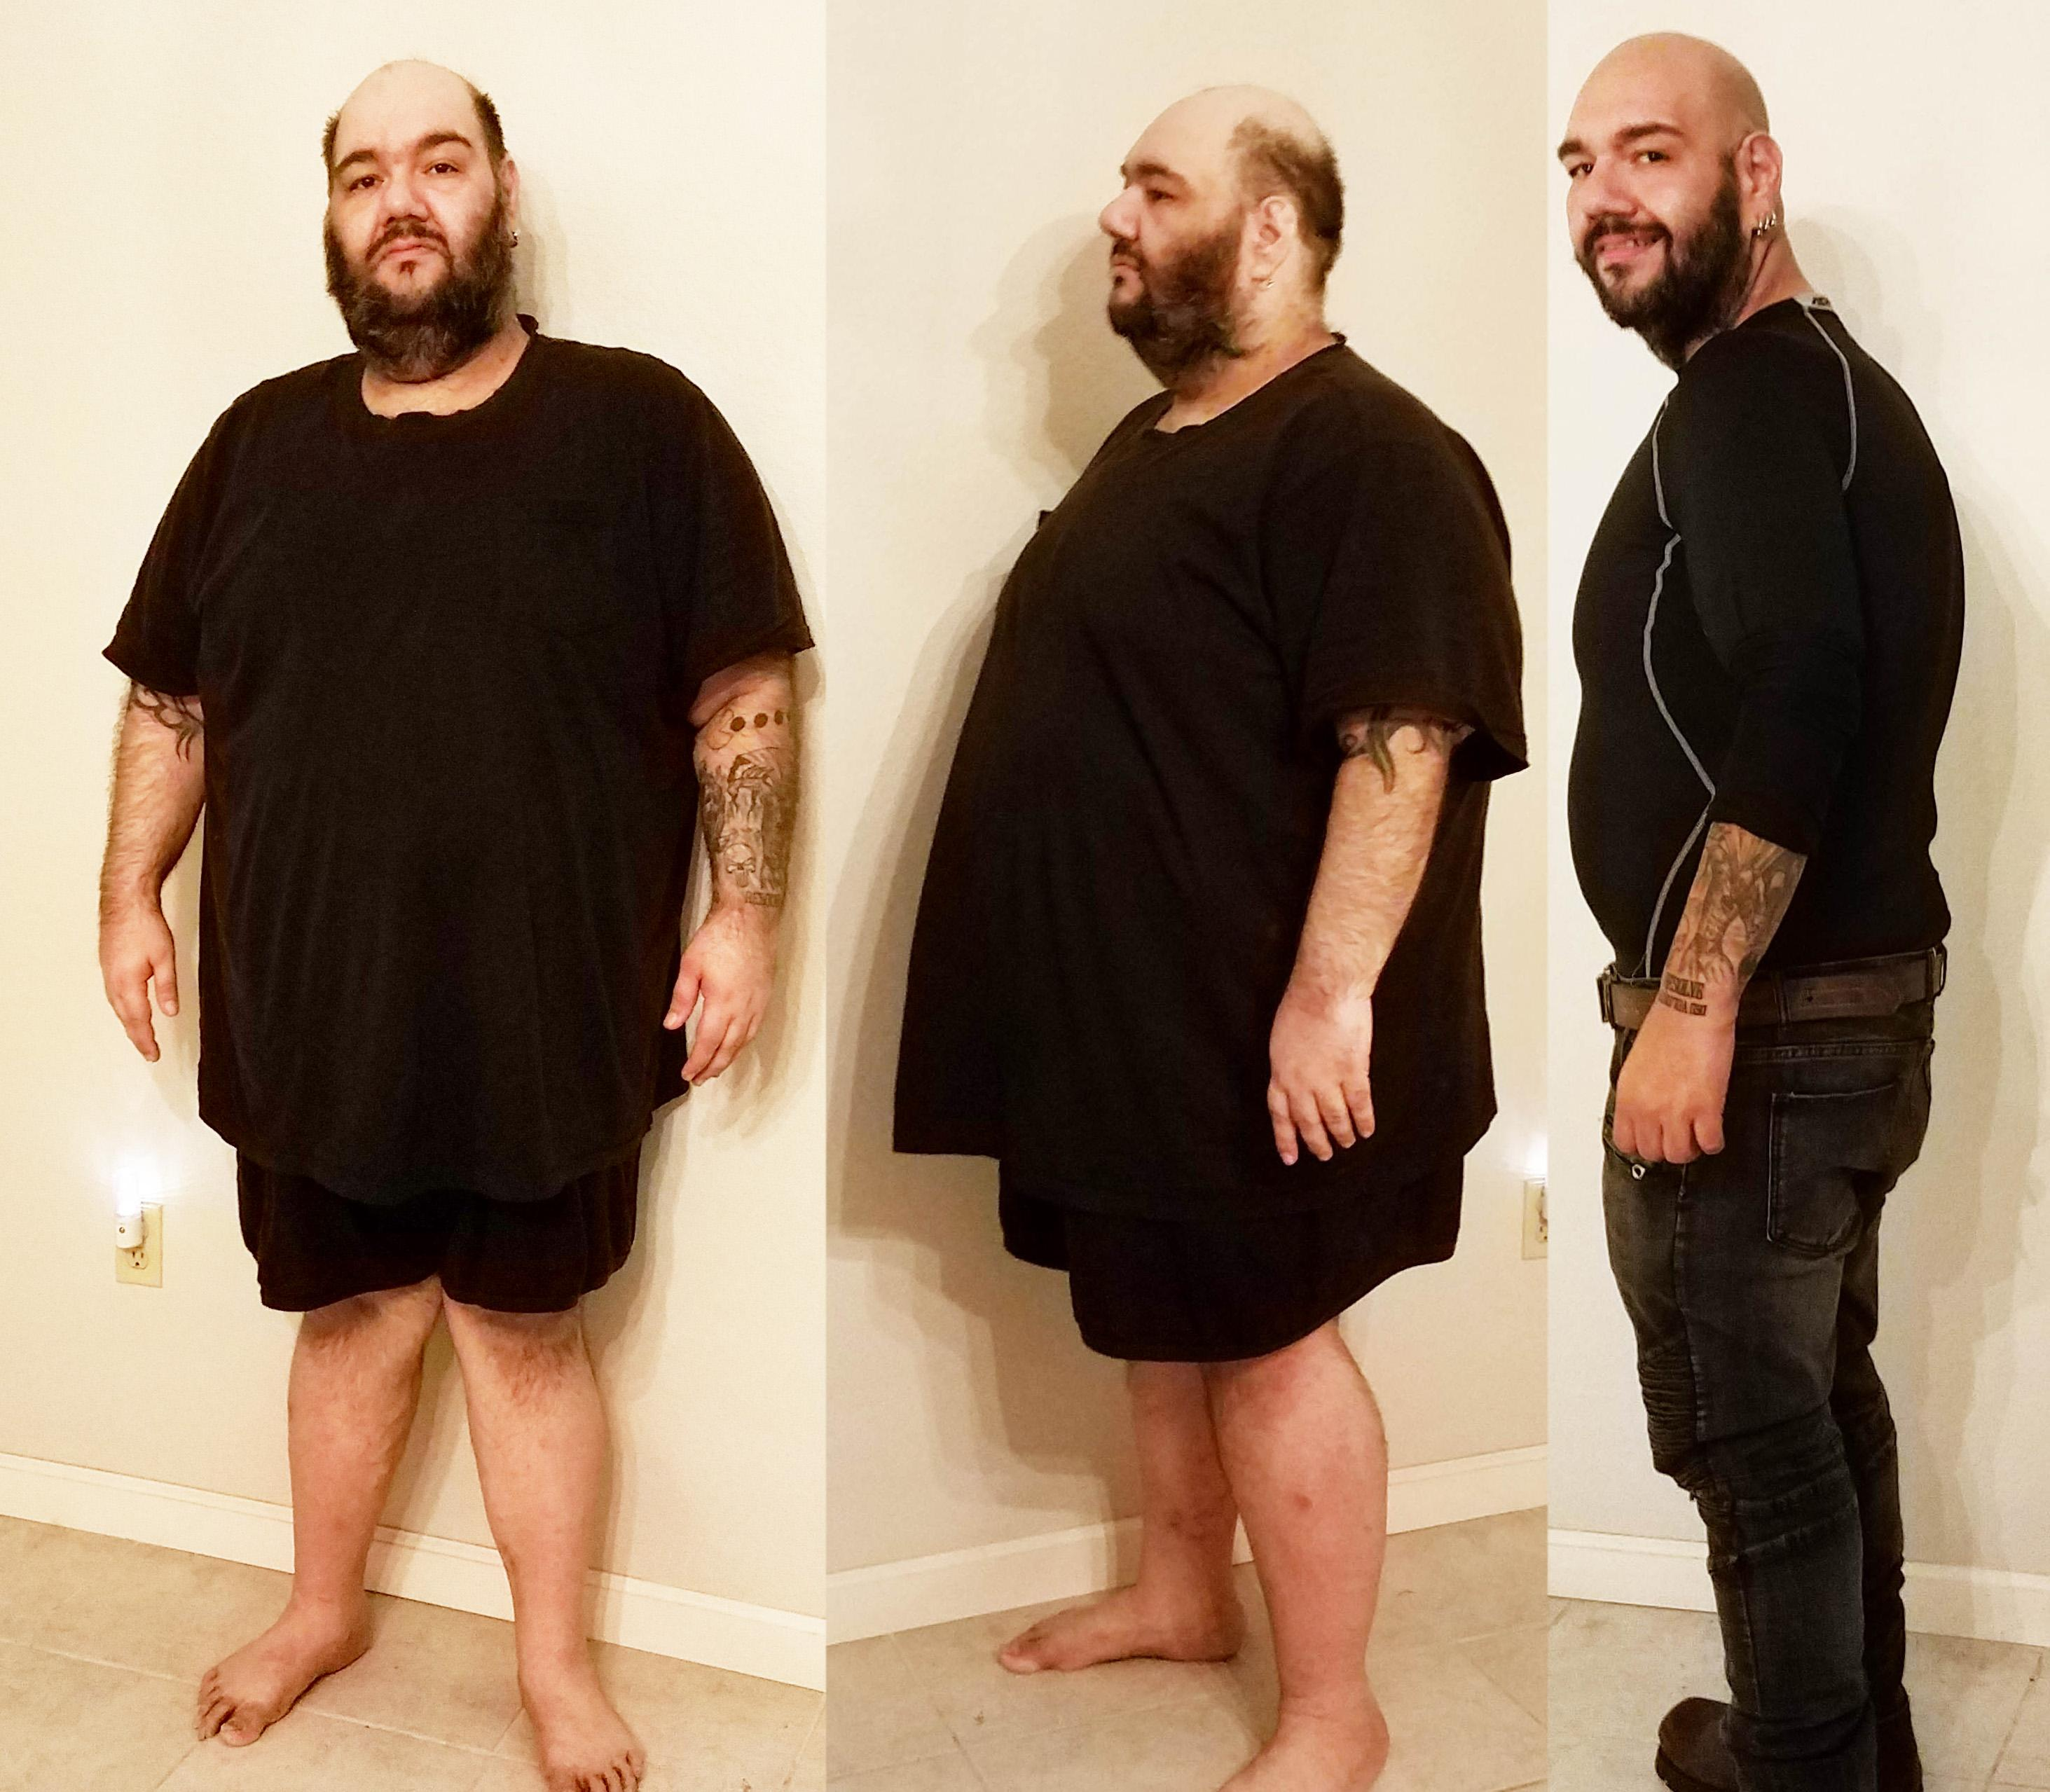 [Image] u/VegasLowRoller lost 234lbs in 1 year